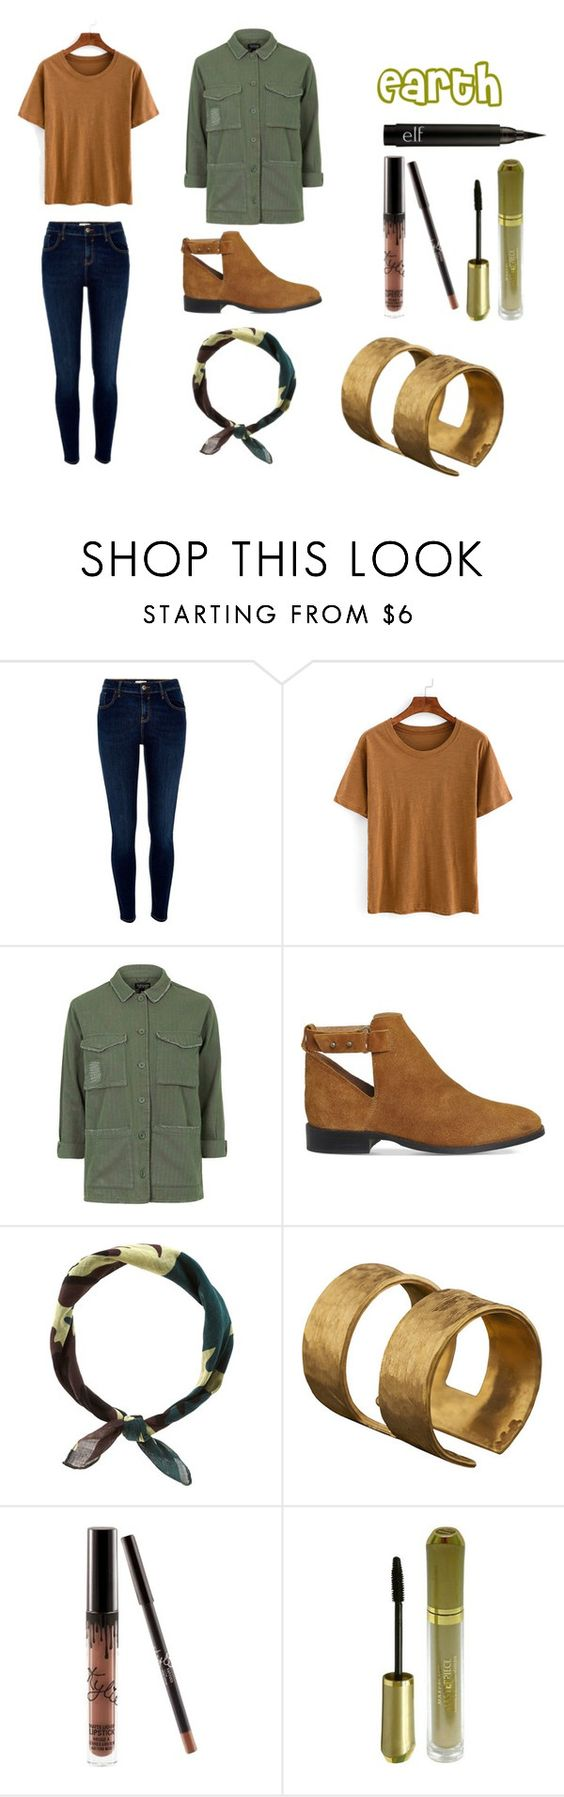 """""""Earth"""" by electronic-lions on Polyvore featuring River Island, Topshop, Office, New Look, ADIN & ROYALE, Max Factor, modern, neutrals, earthtones and atla"""